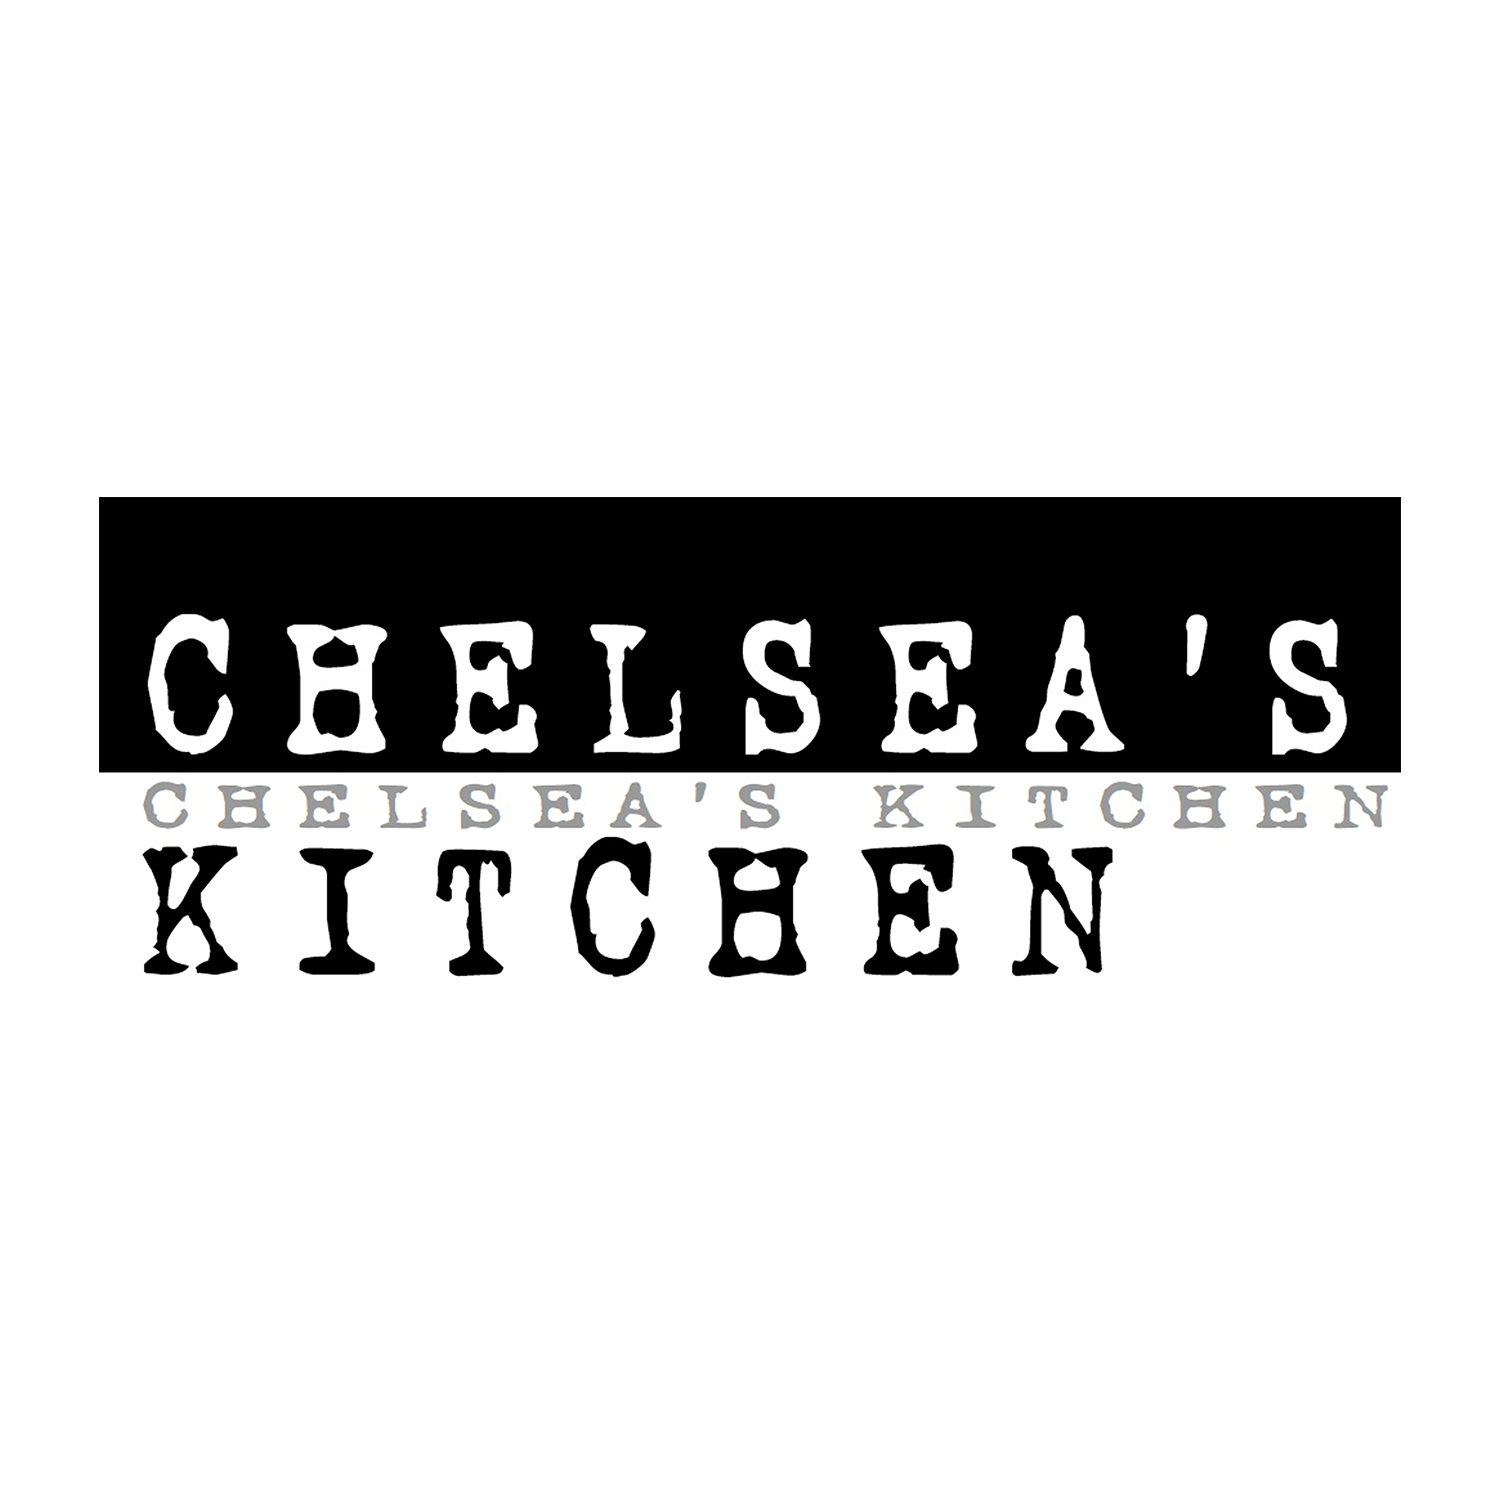 CHELSEA'S KITCHEN